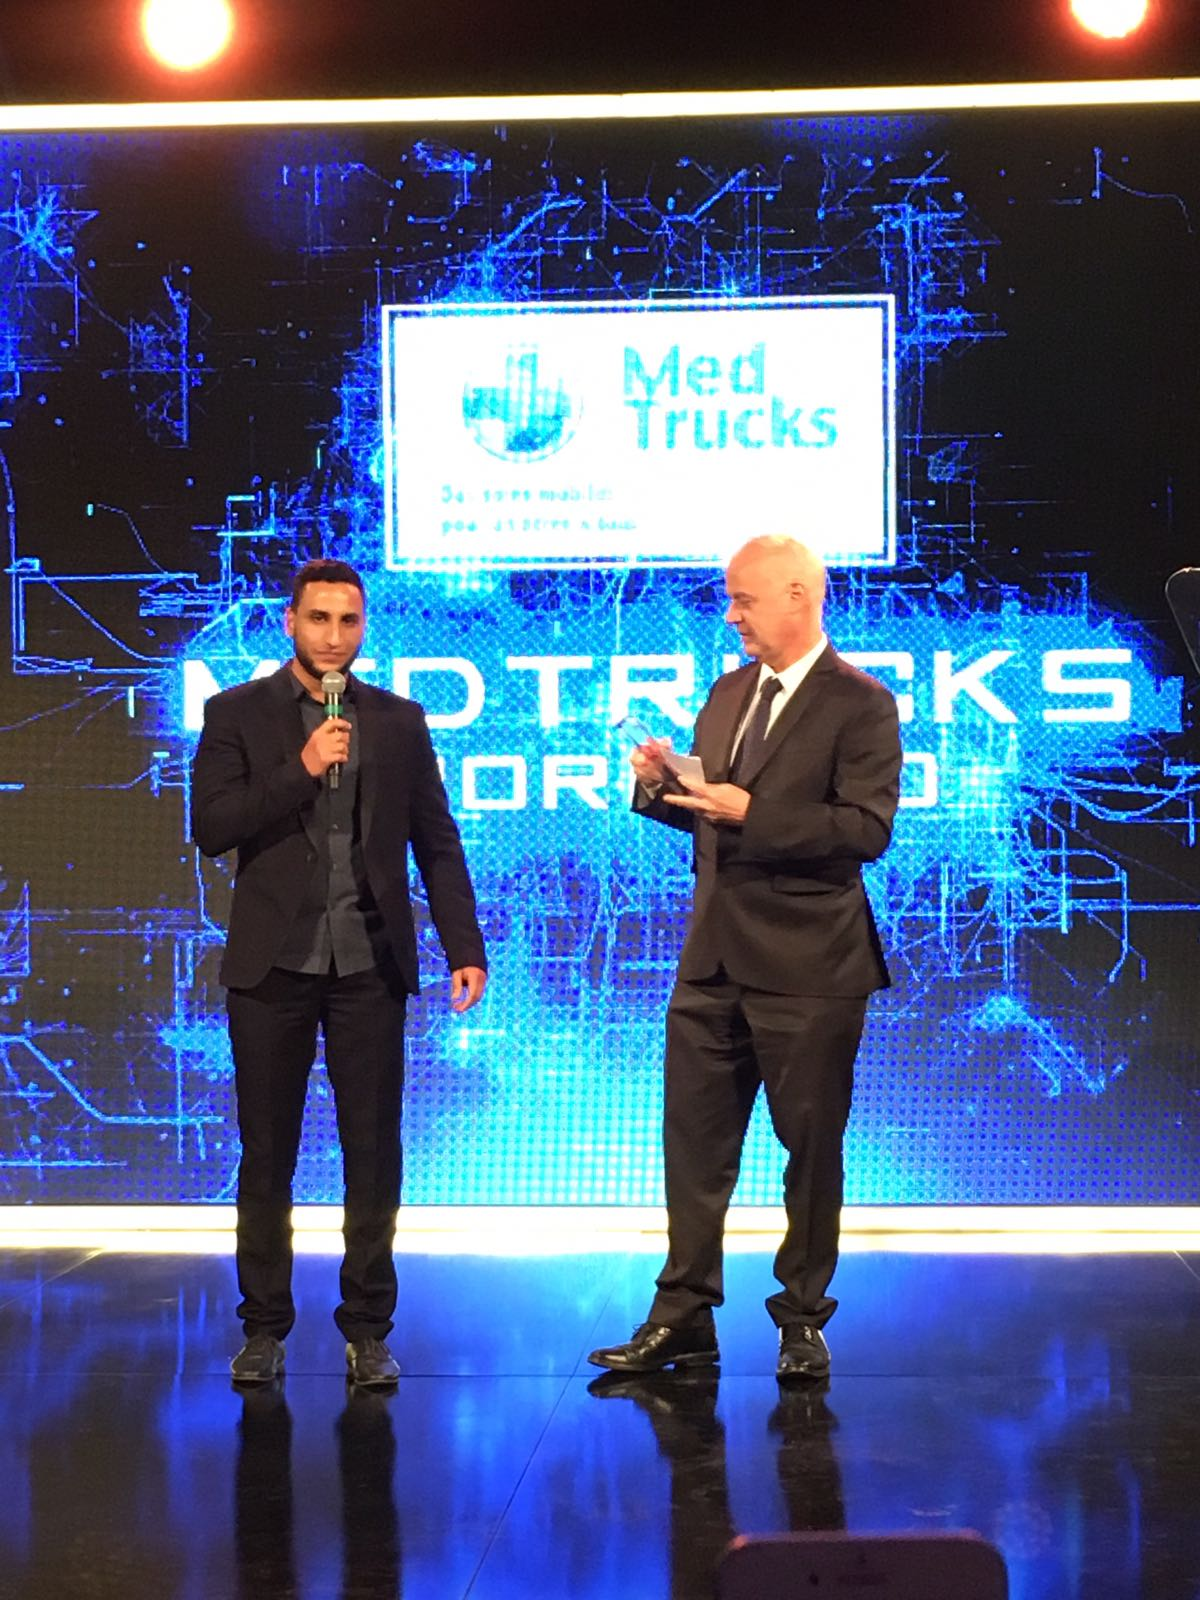 Announcing first prize winners Medtrucks